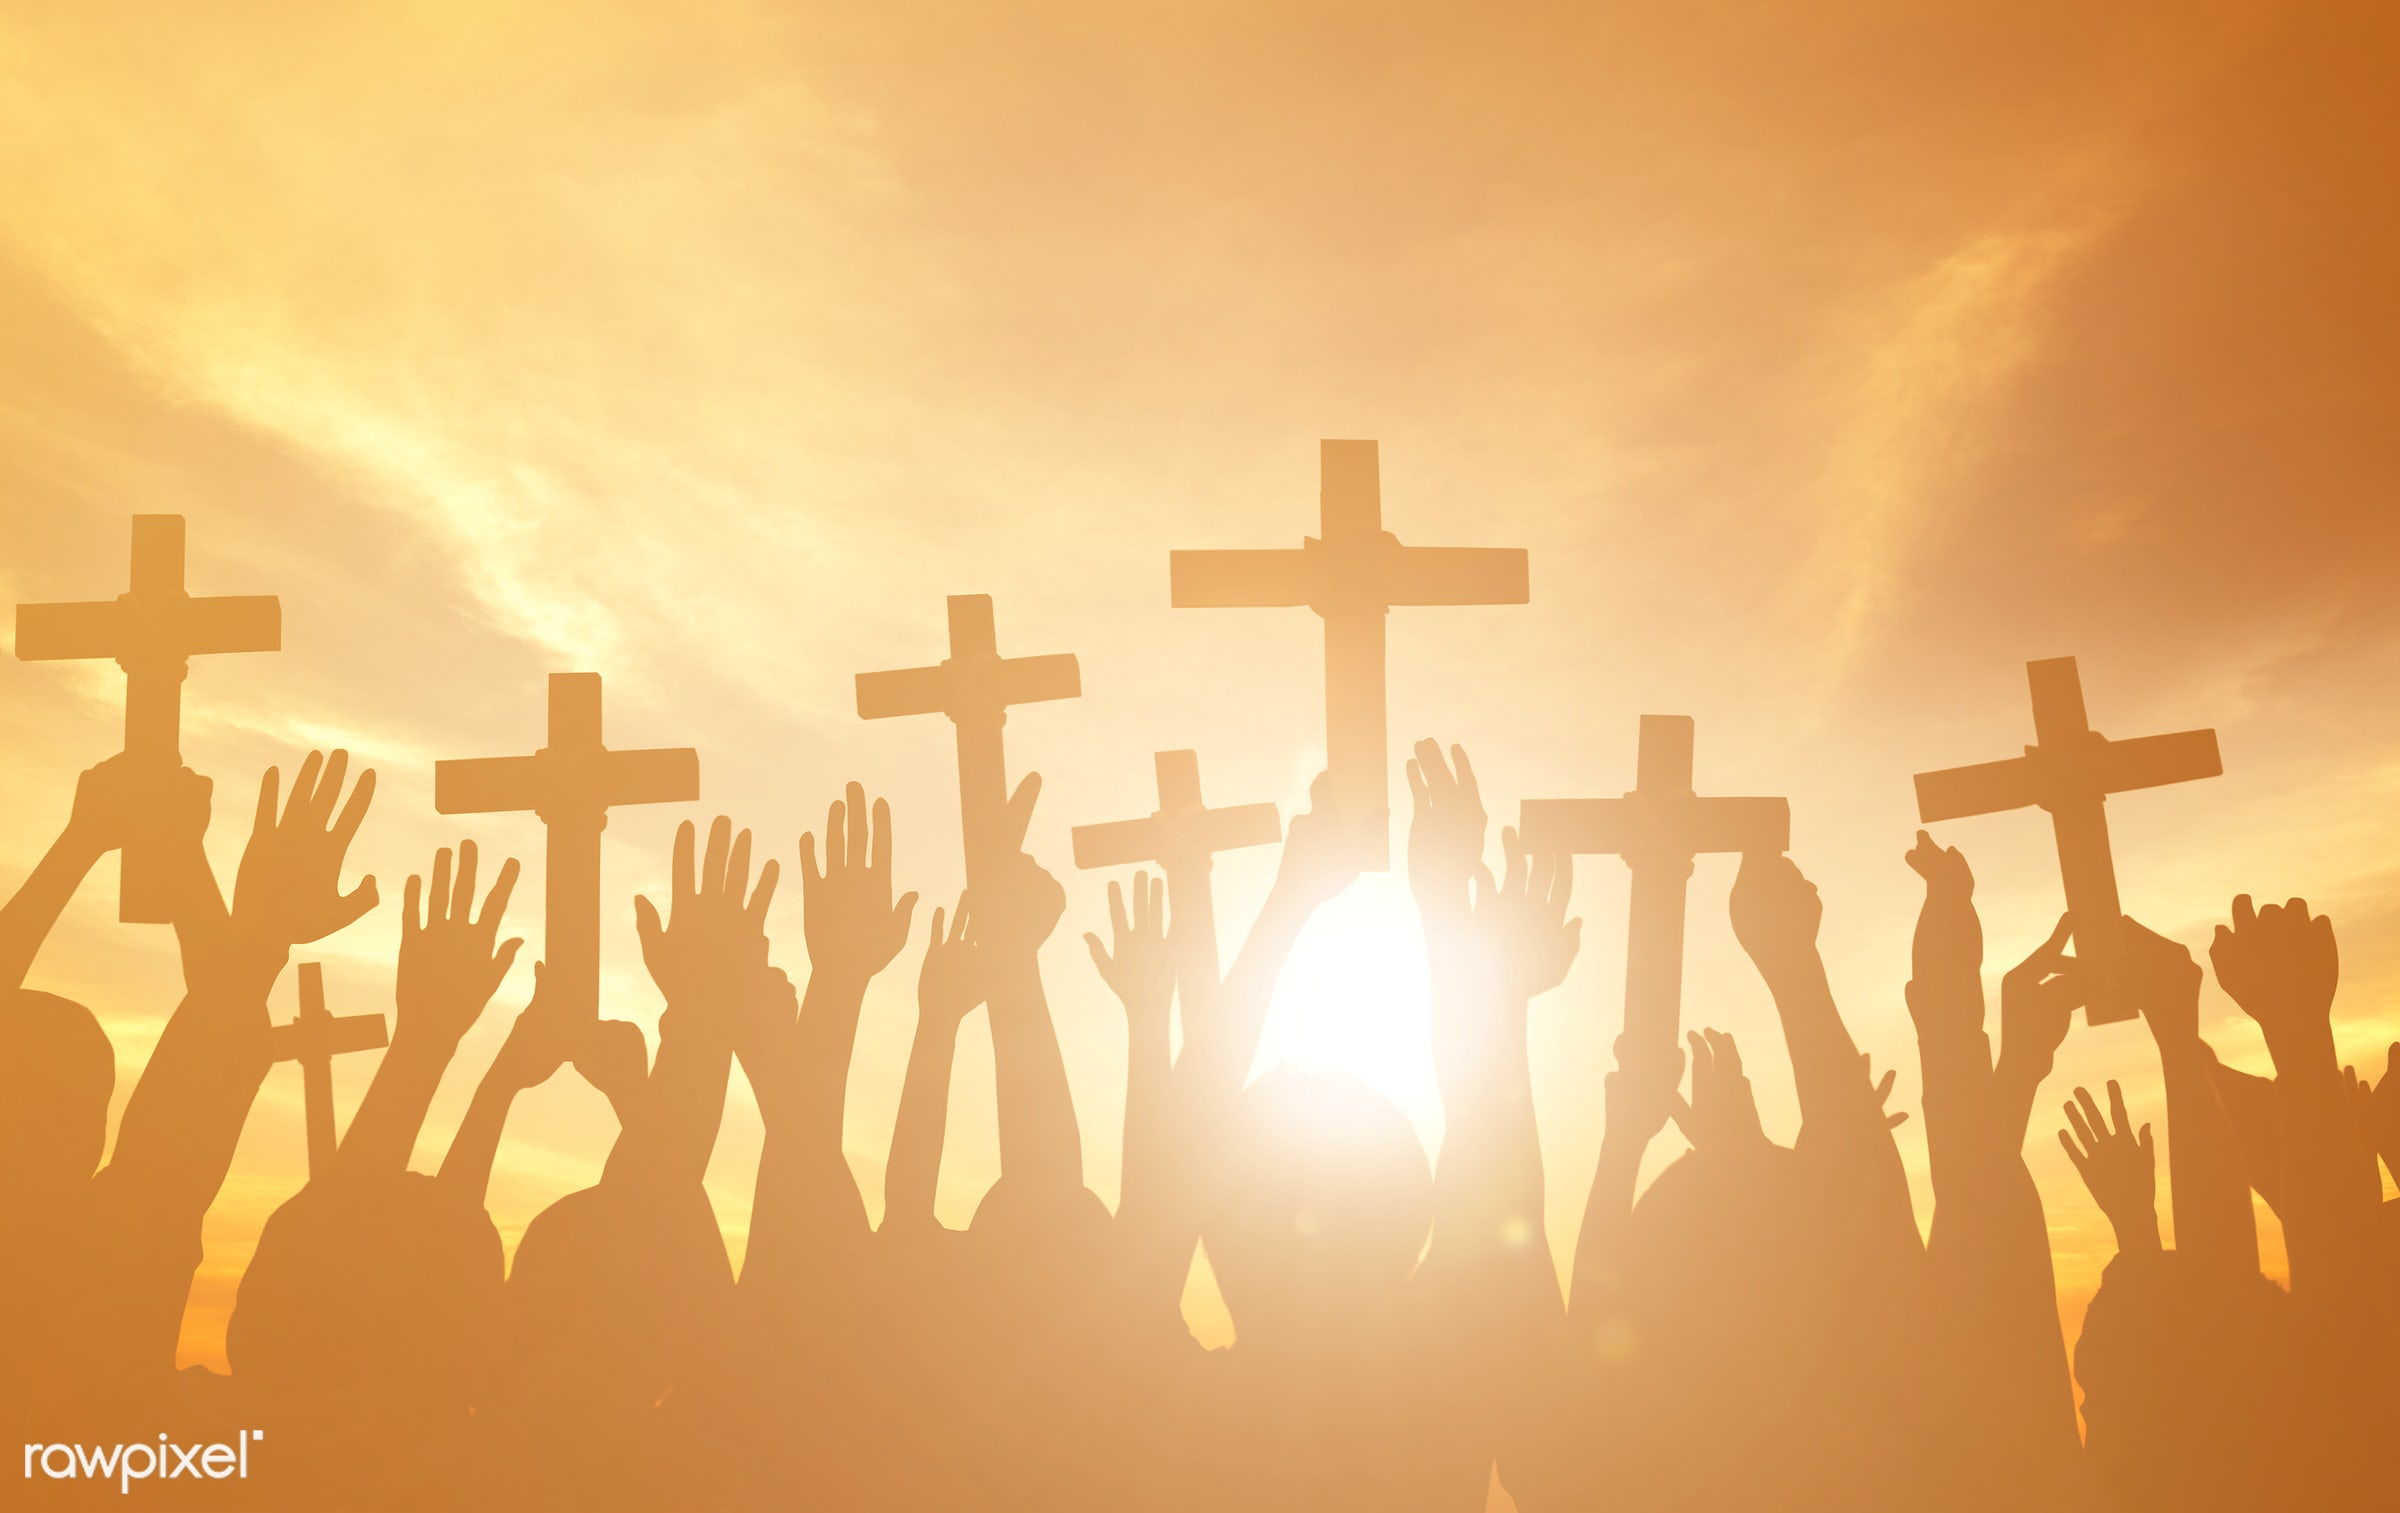 applauding, christian, holding, arms outstretched, arms raised, aspiration, back lit, believe, christianity, church, cloud,...